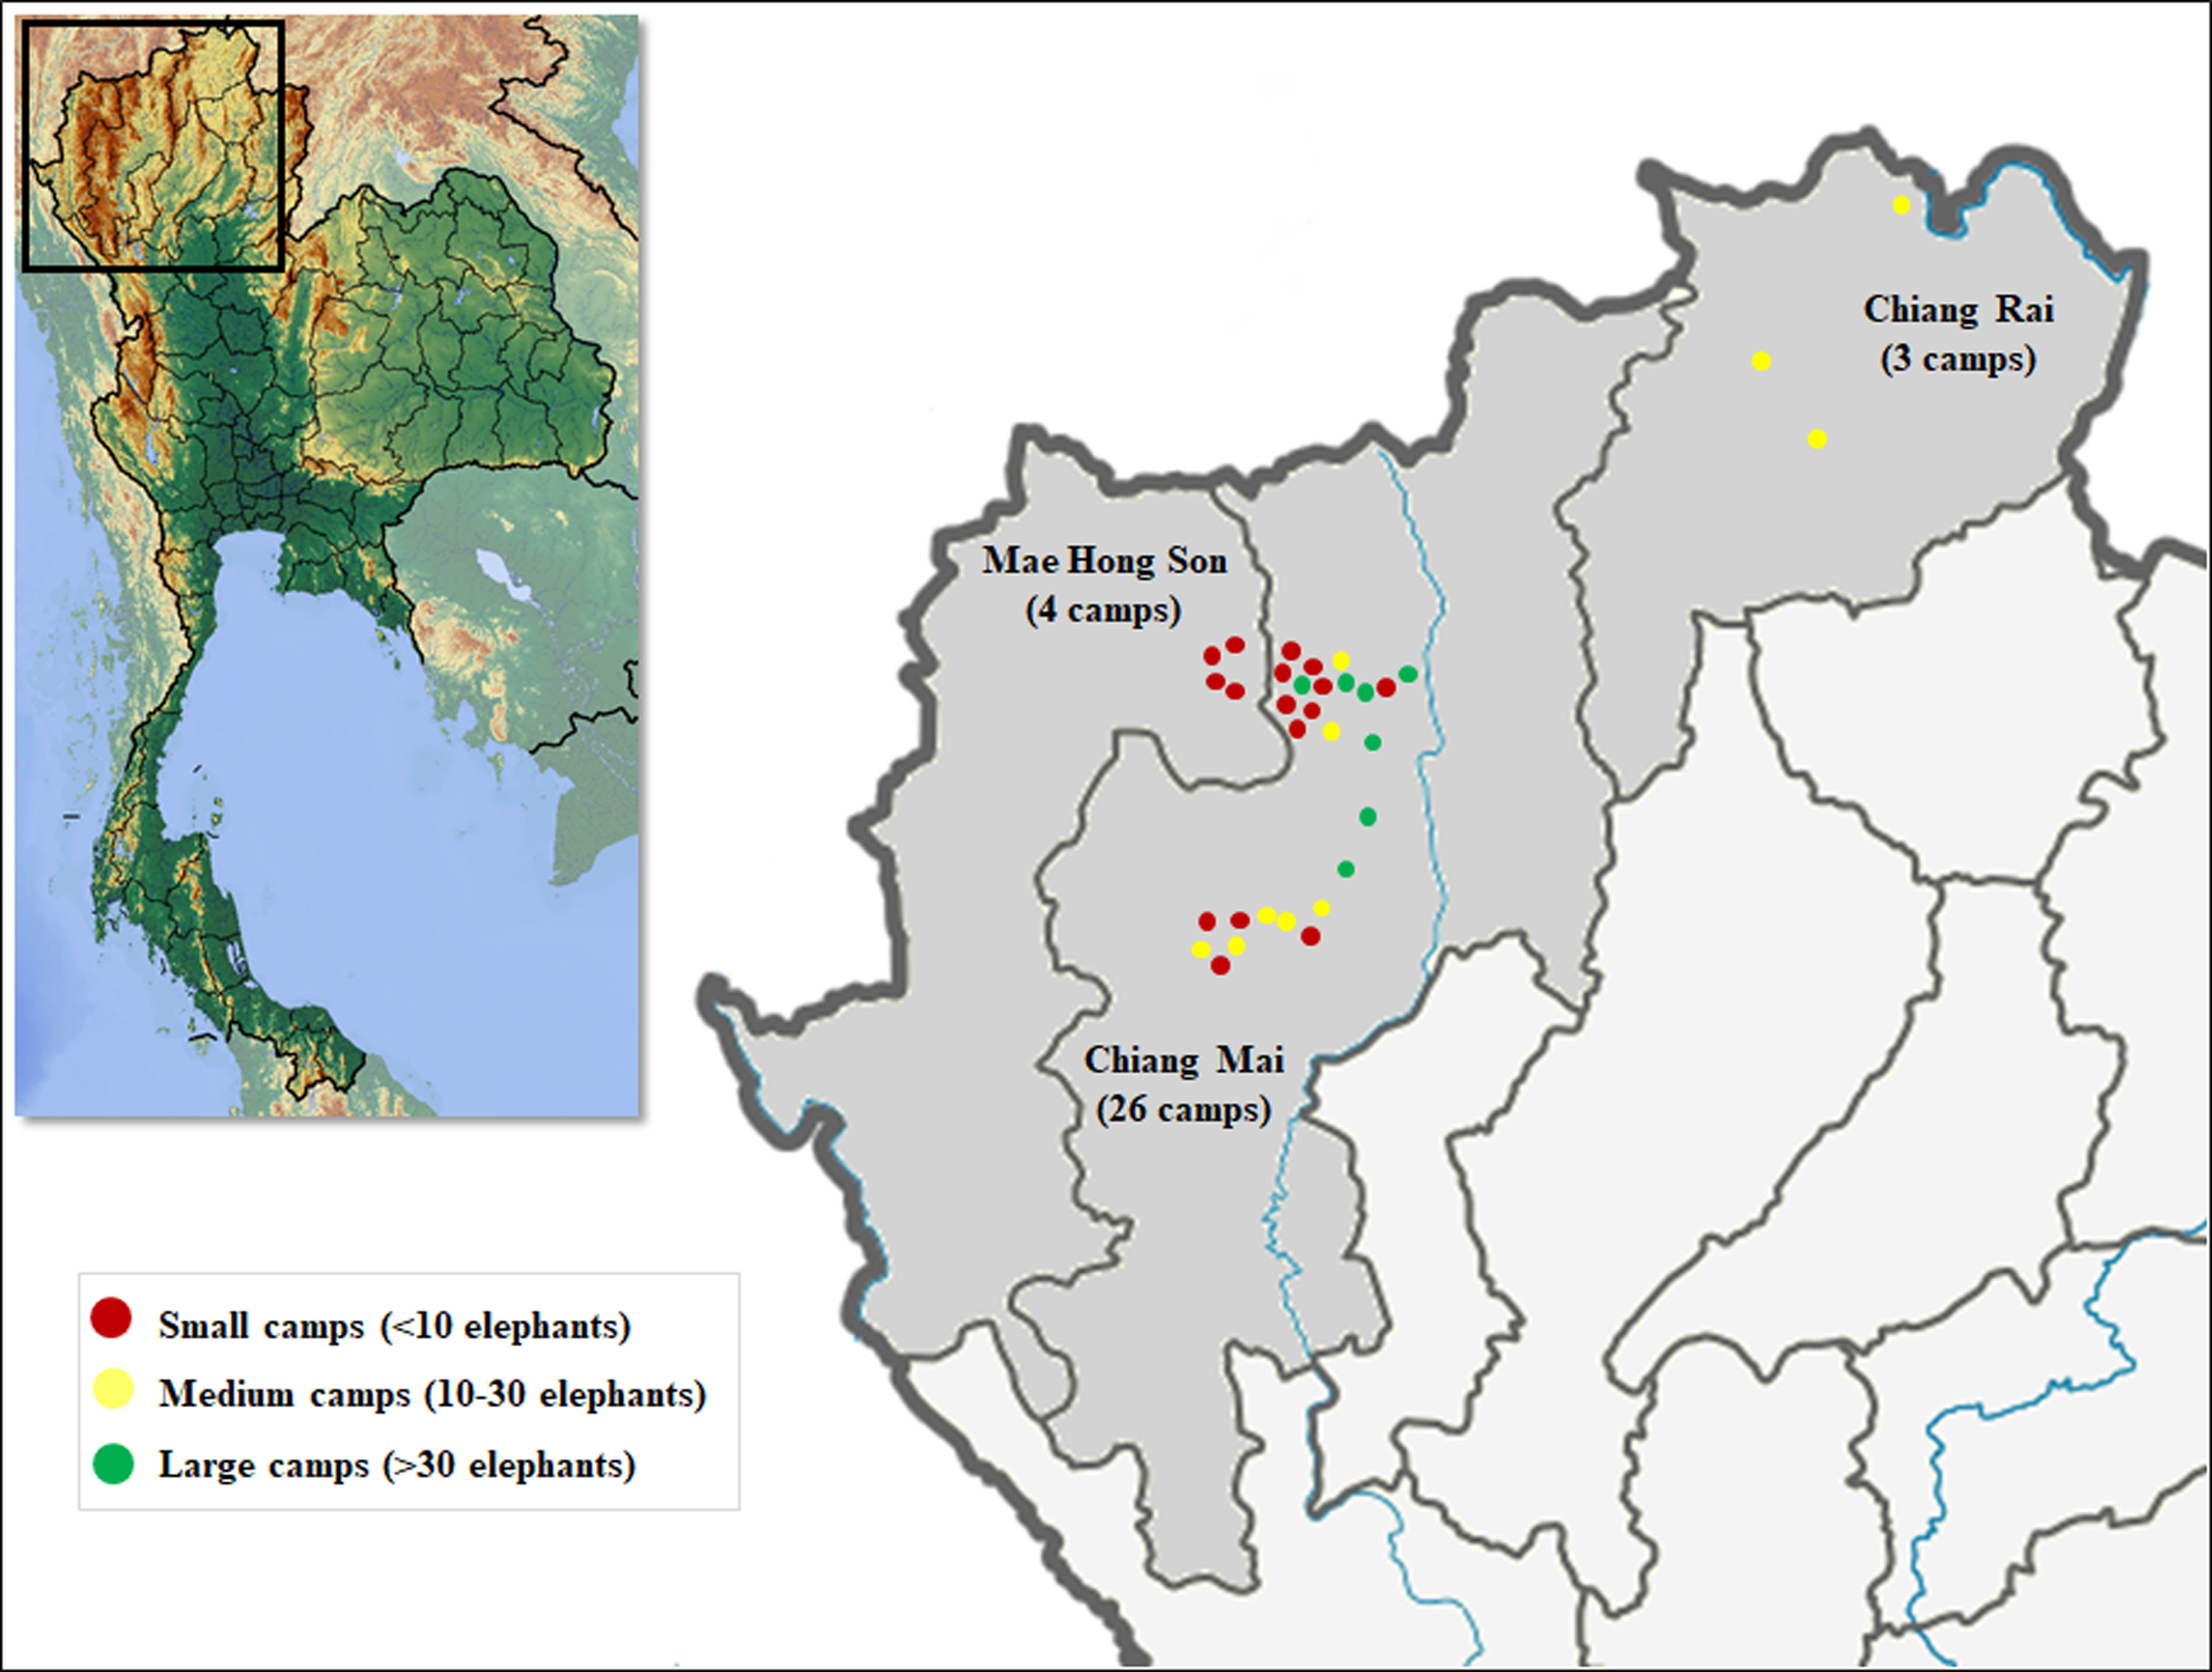 Changing trends in elephant camp management in northern Thailand and